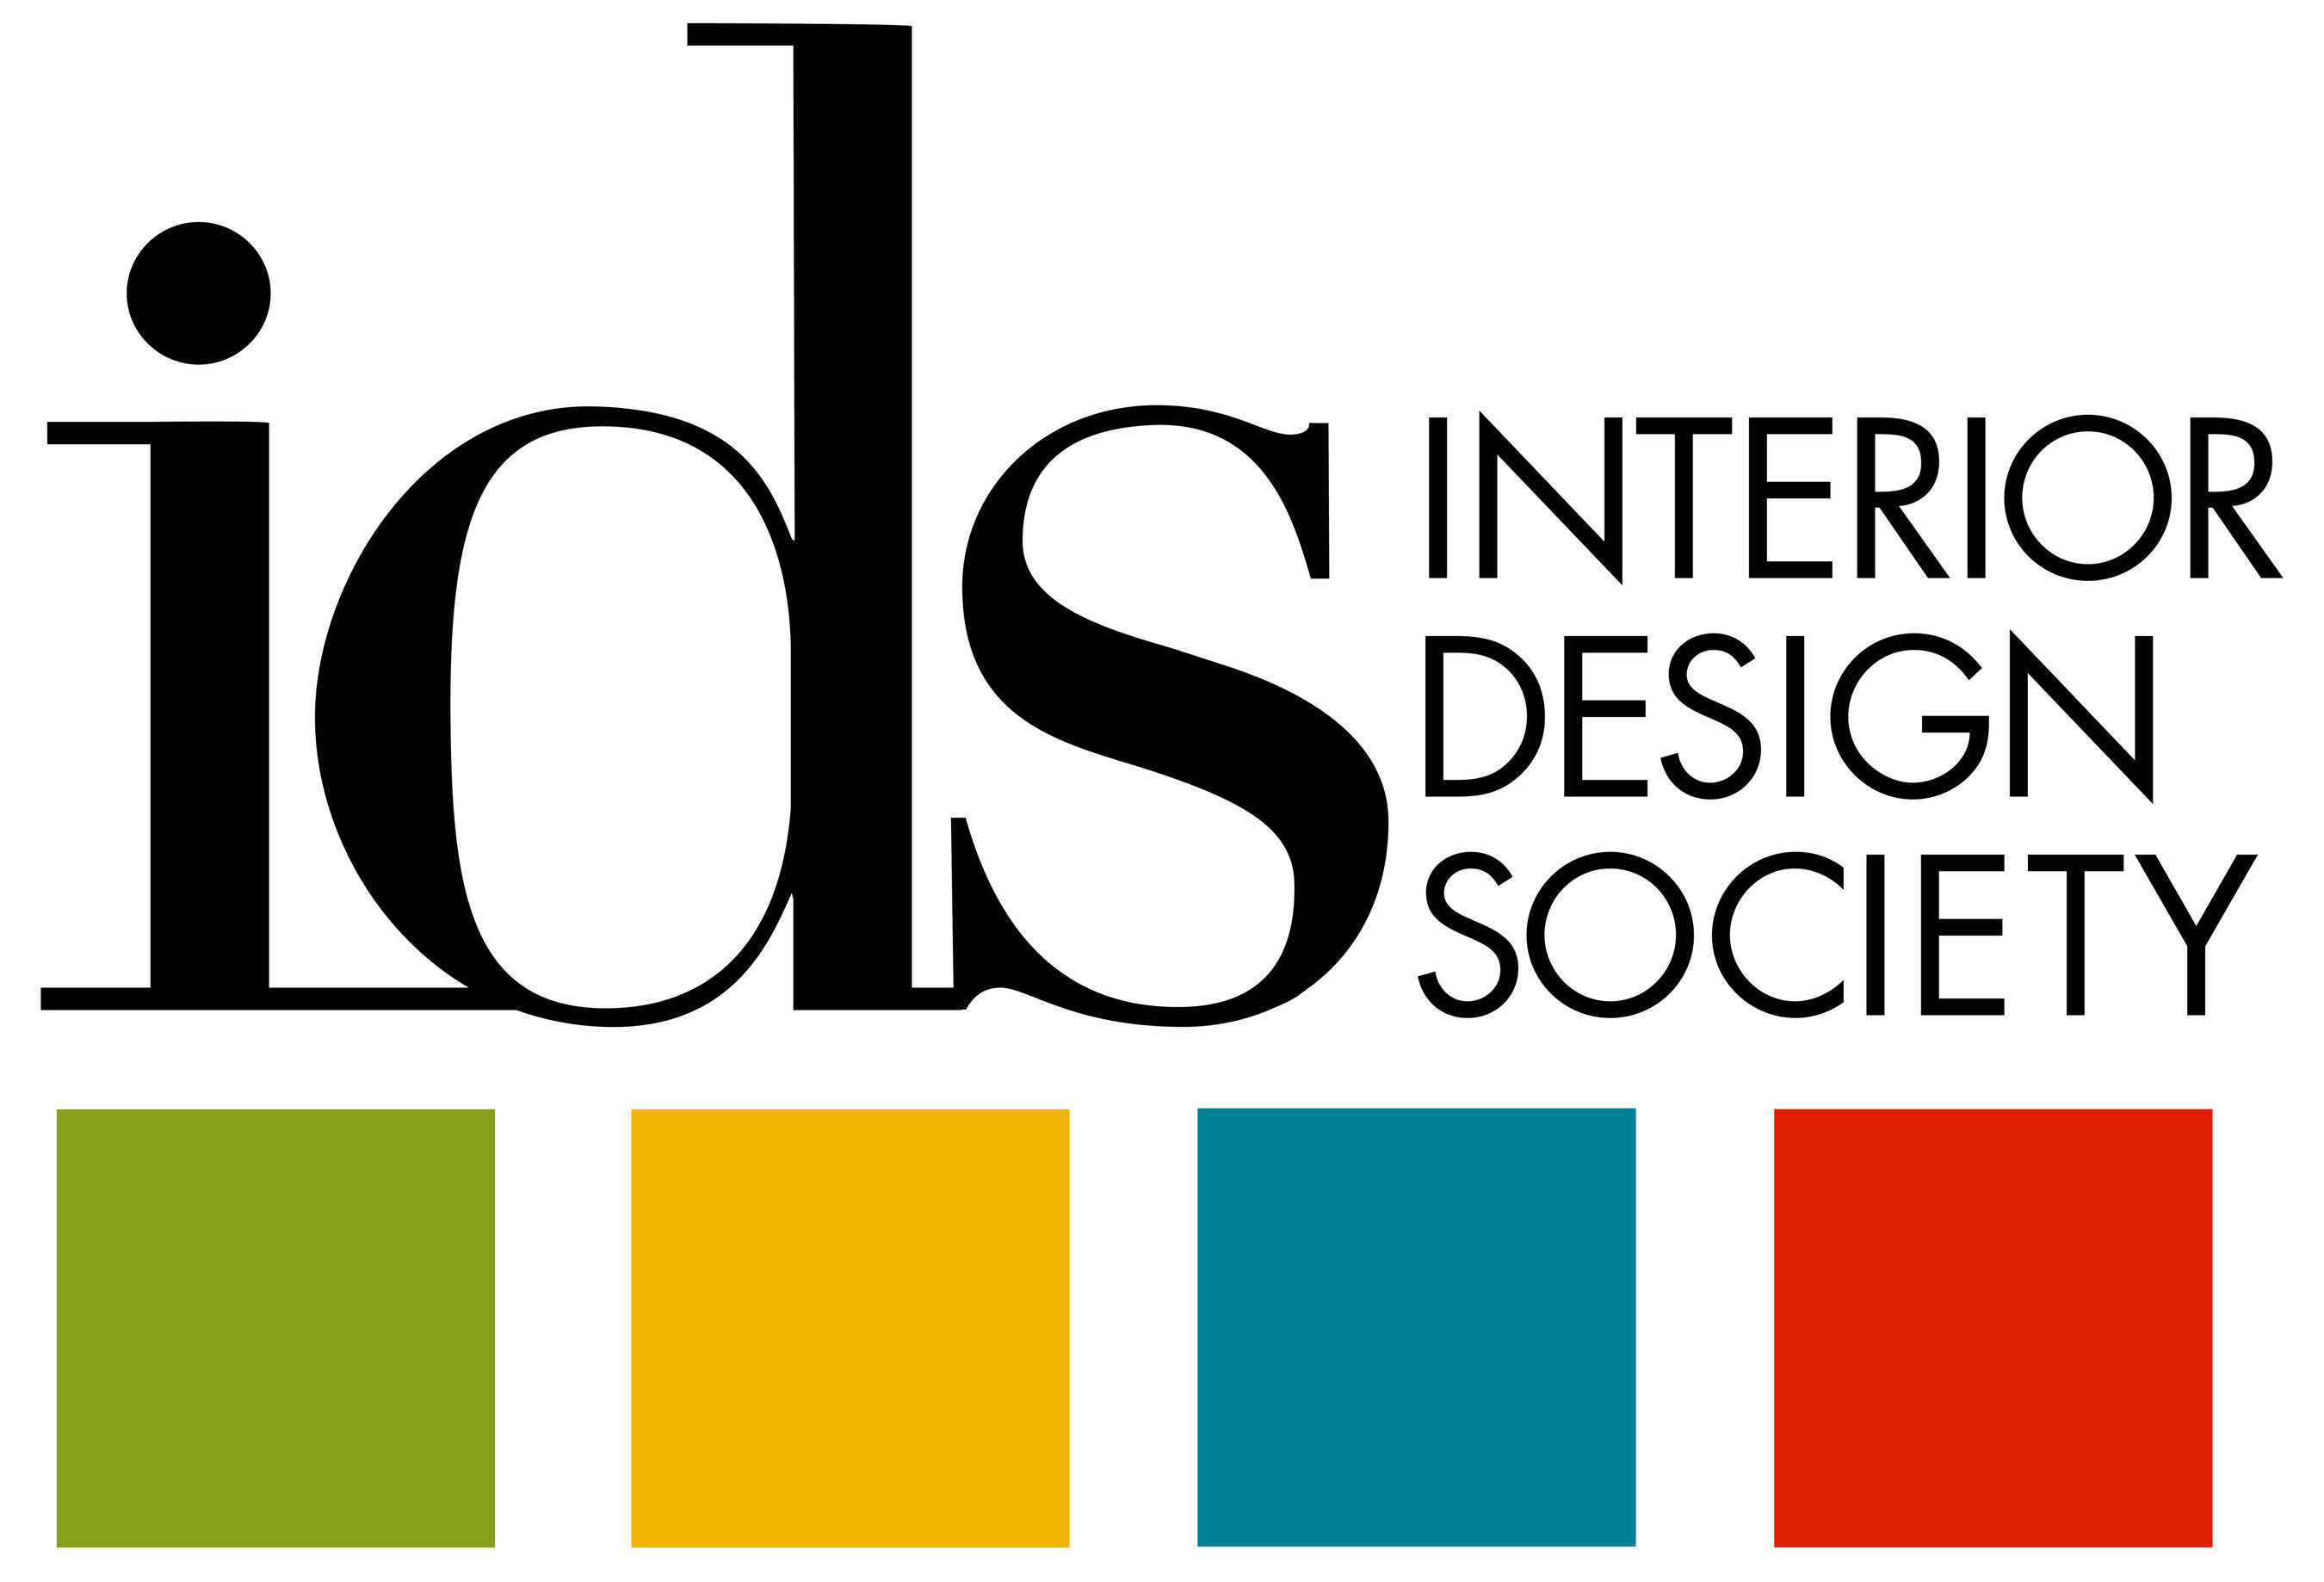 First annual charitable design awards judging panel selected